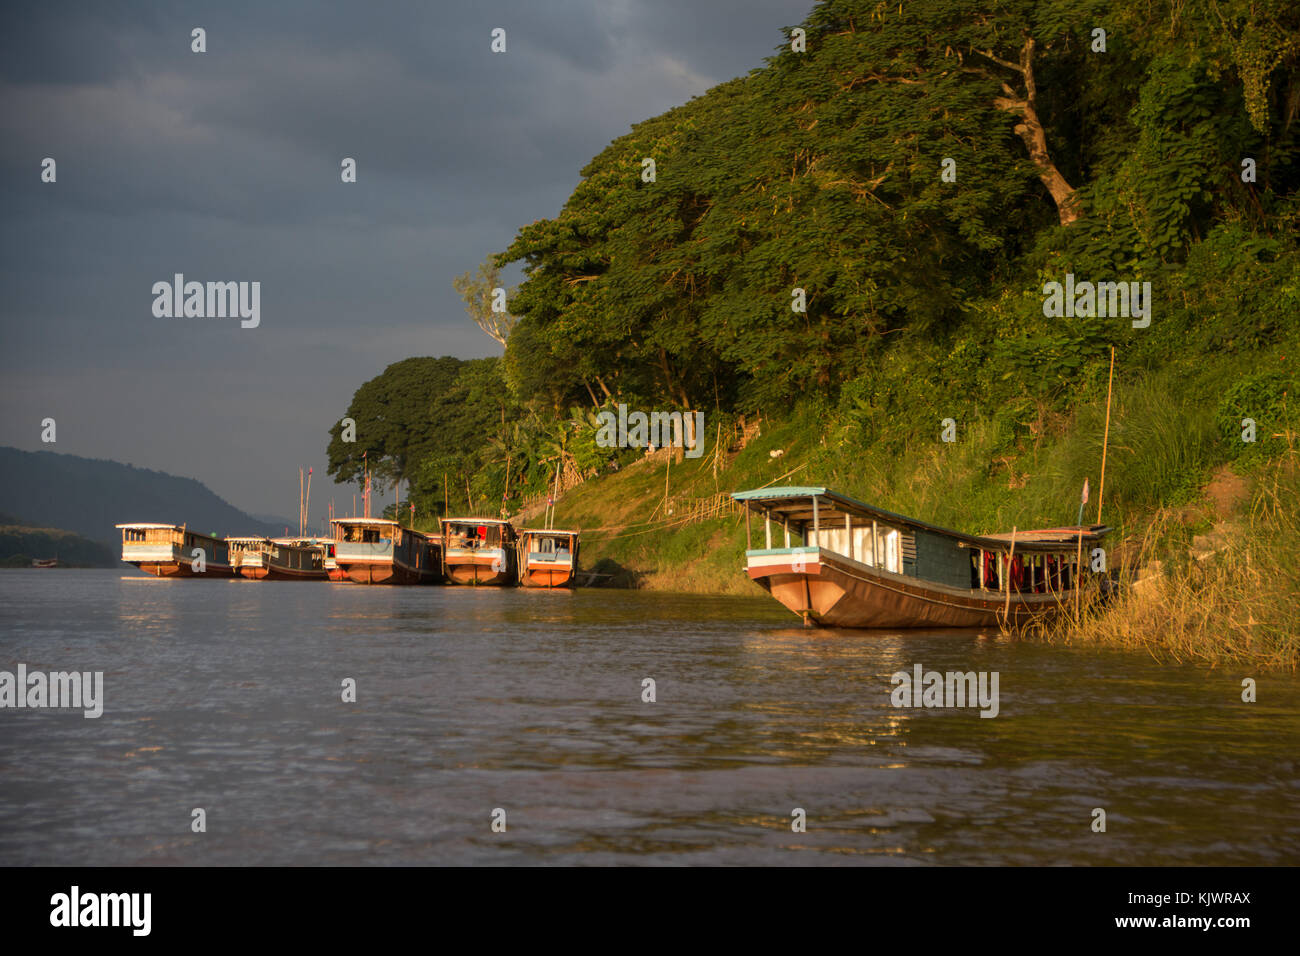 Boats in the evening sun on Mekong river in Luang Prabang - Stock Image